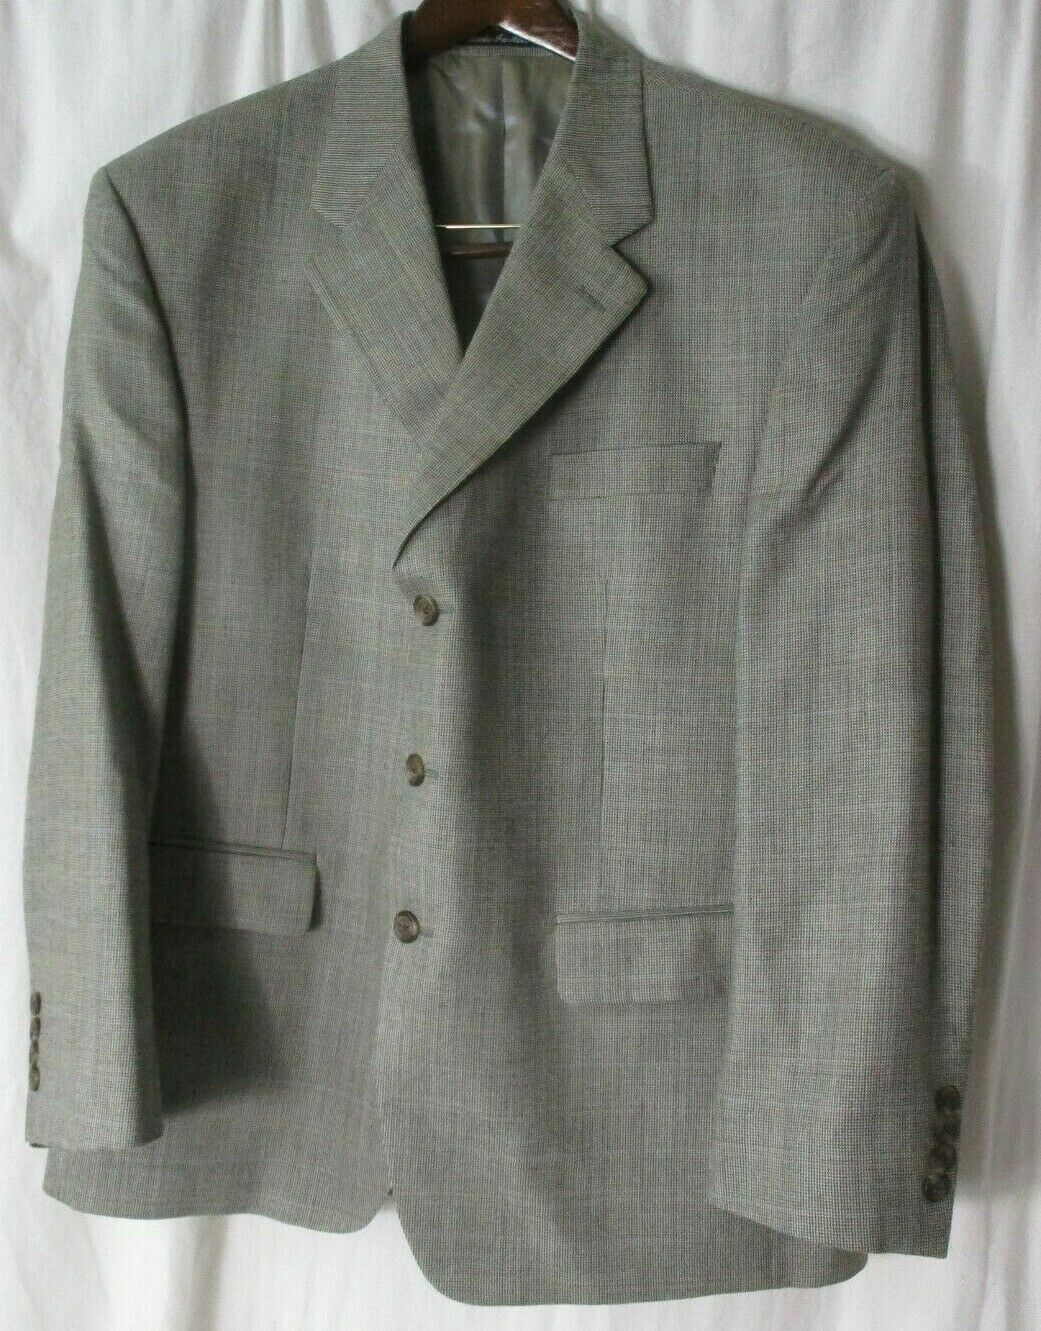 Primary image for Ralph Lauren Mens Gray Sports Coat Blazer Suit Jacket Size 44S  (Blue Label)